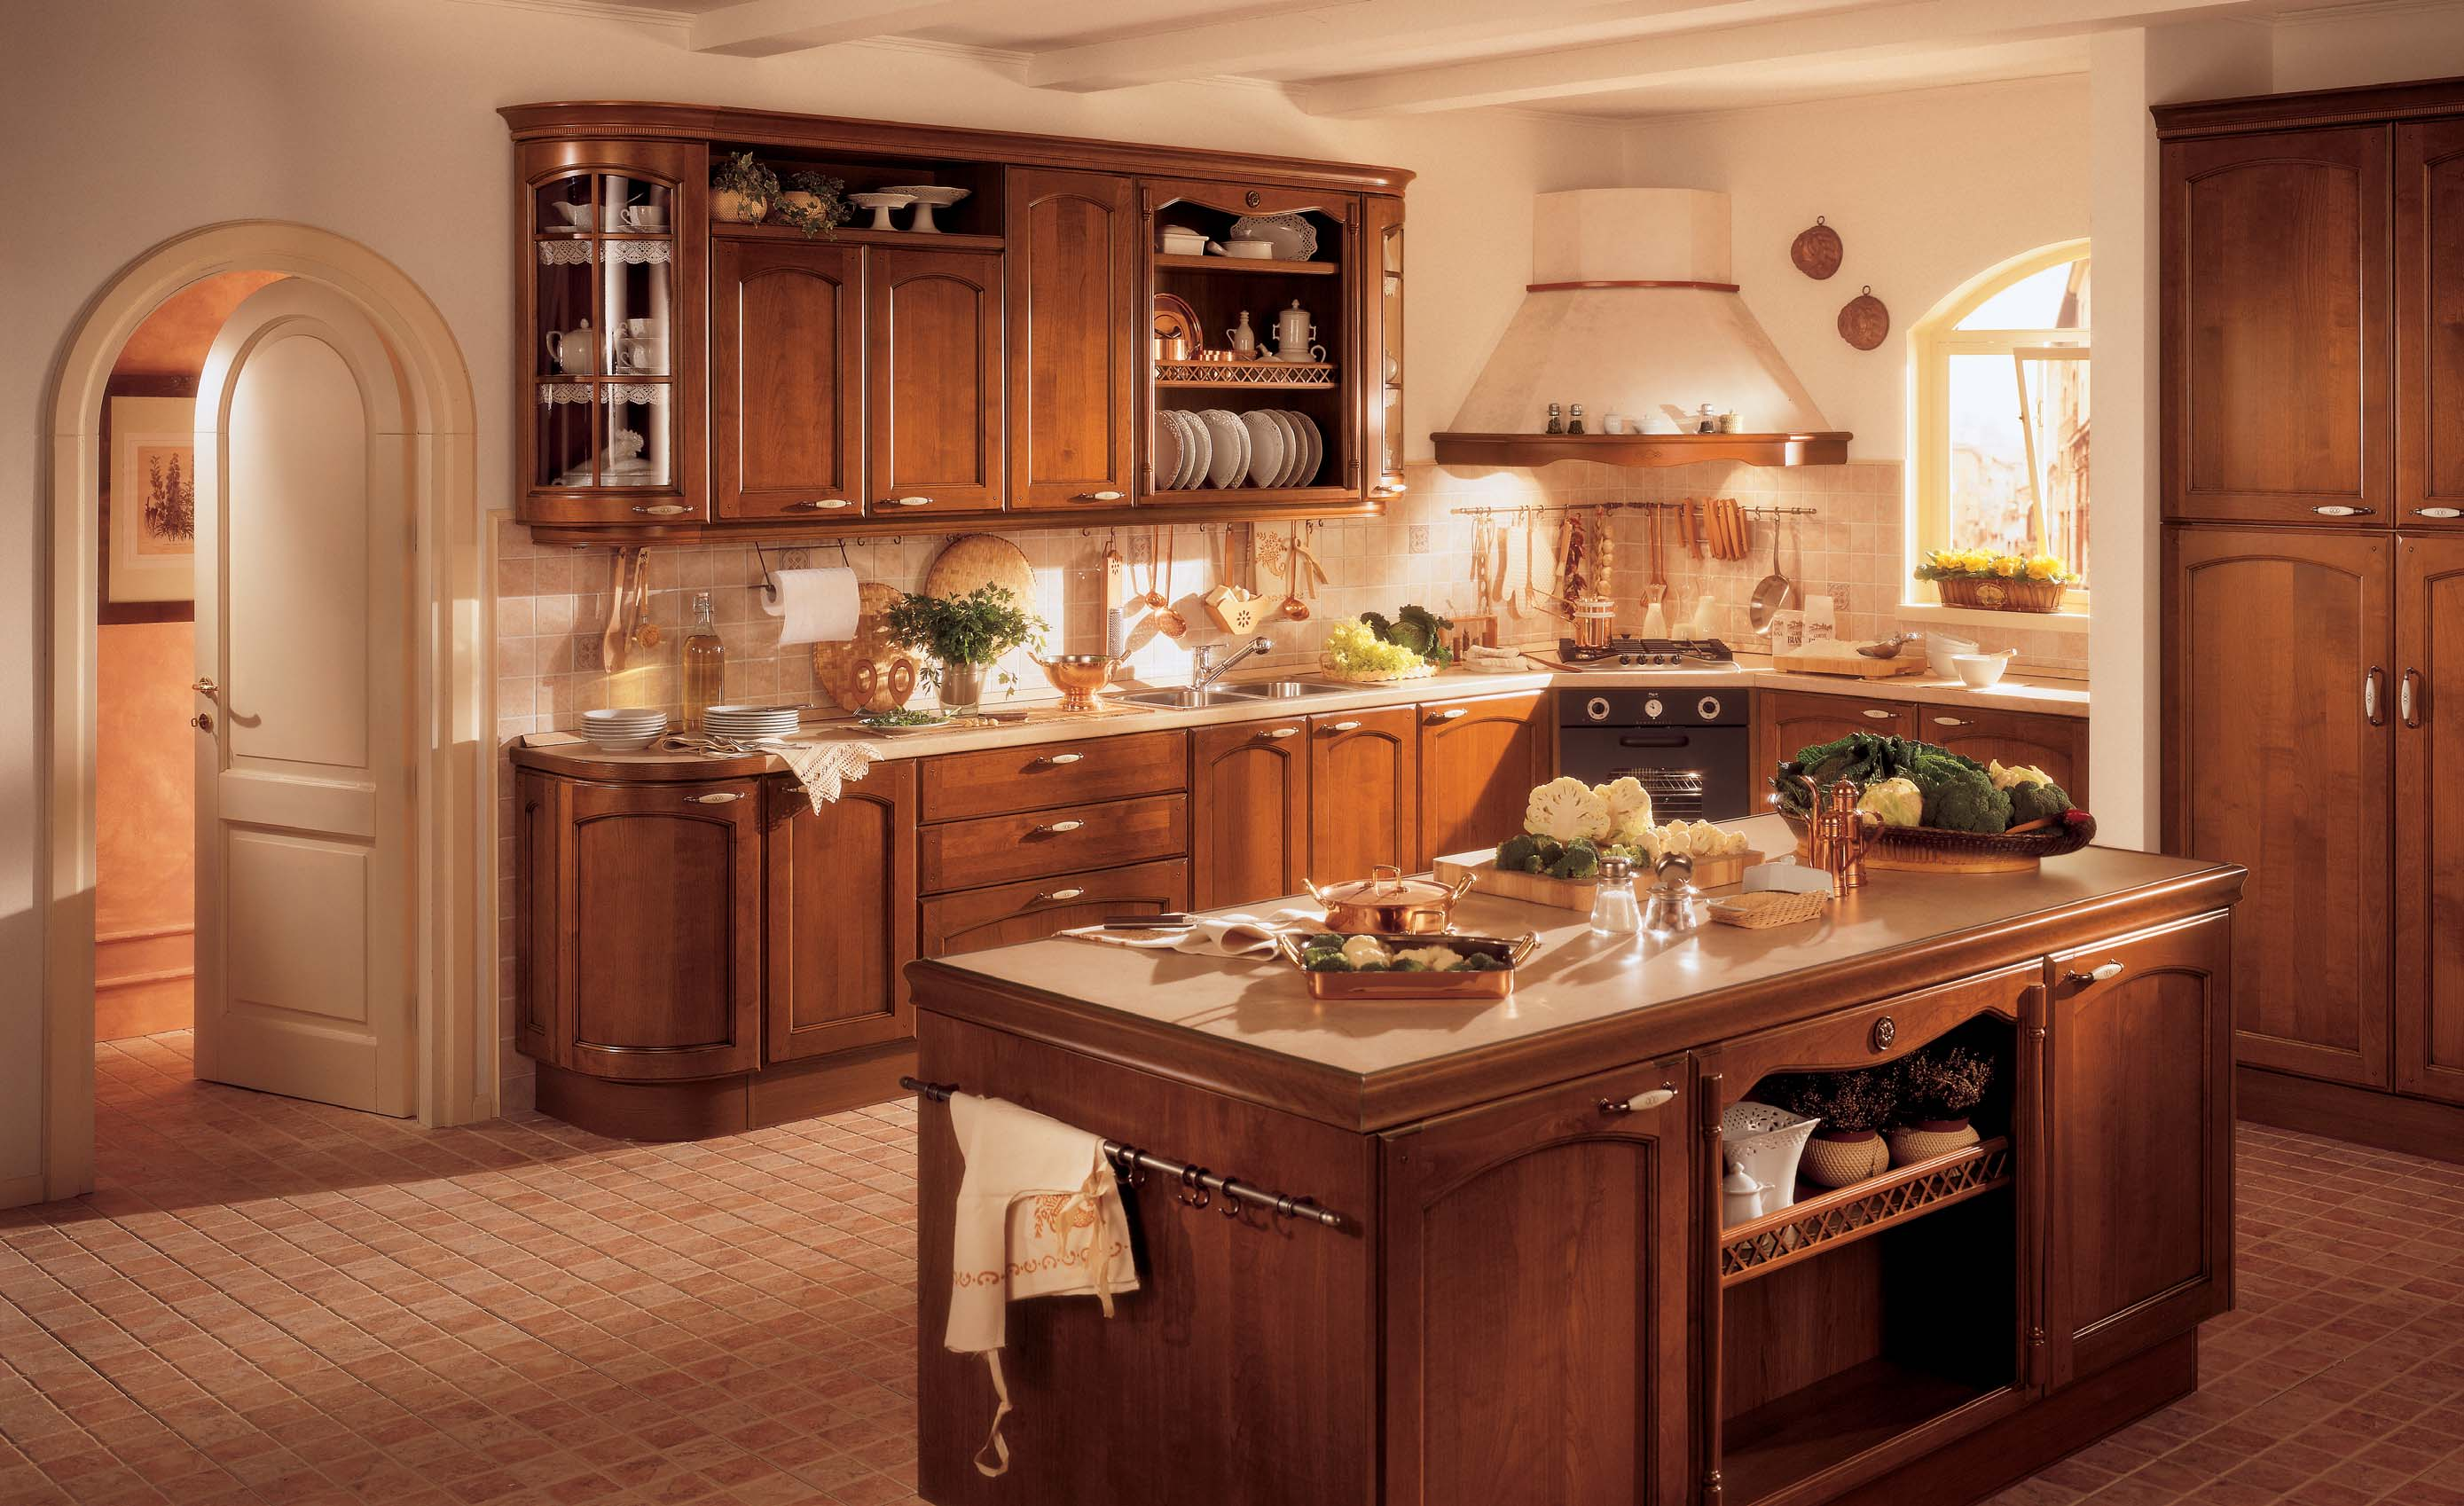 Epoca classic kitchen interior design for Classic kitchen decor